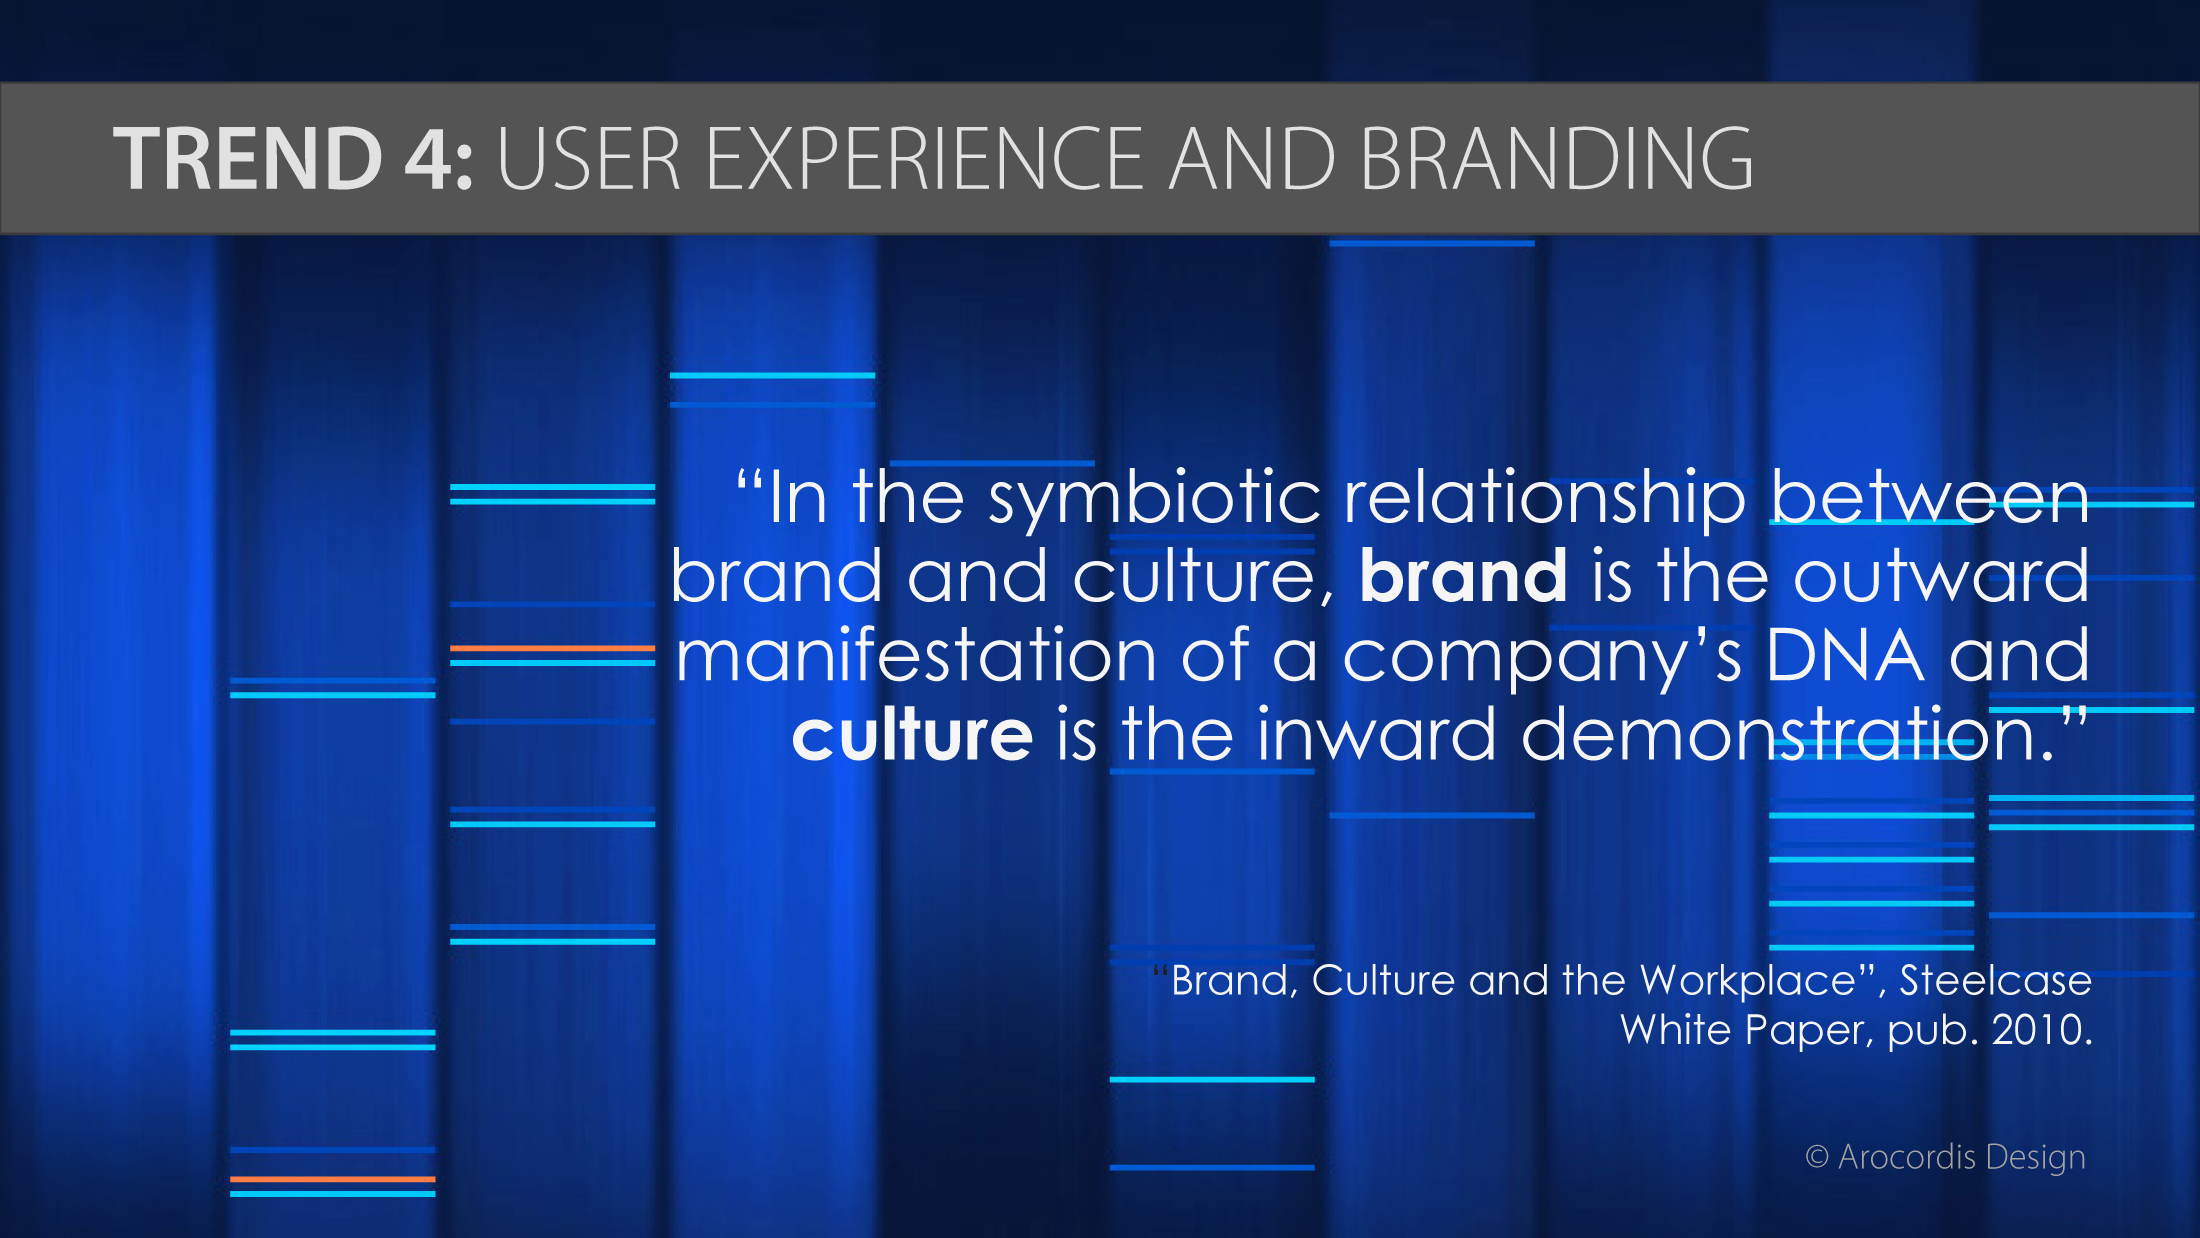 Brand and Culture image from  Emerging Trends in Cultivating Best Places to Work